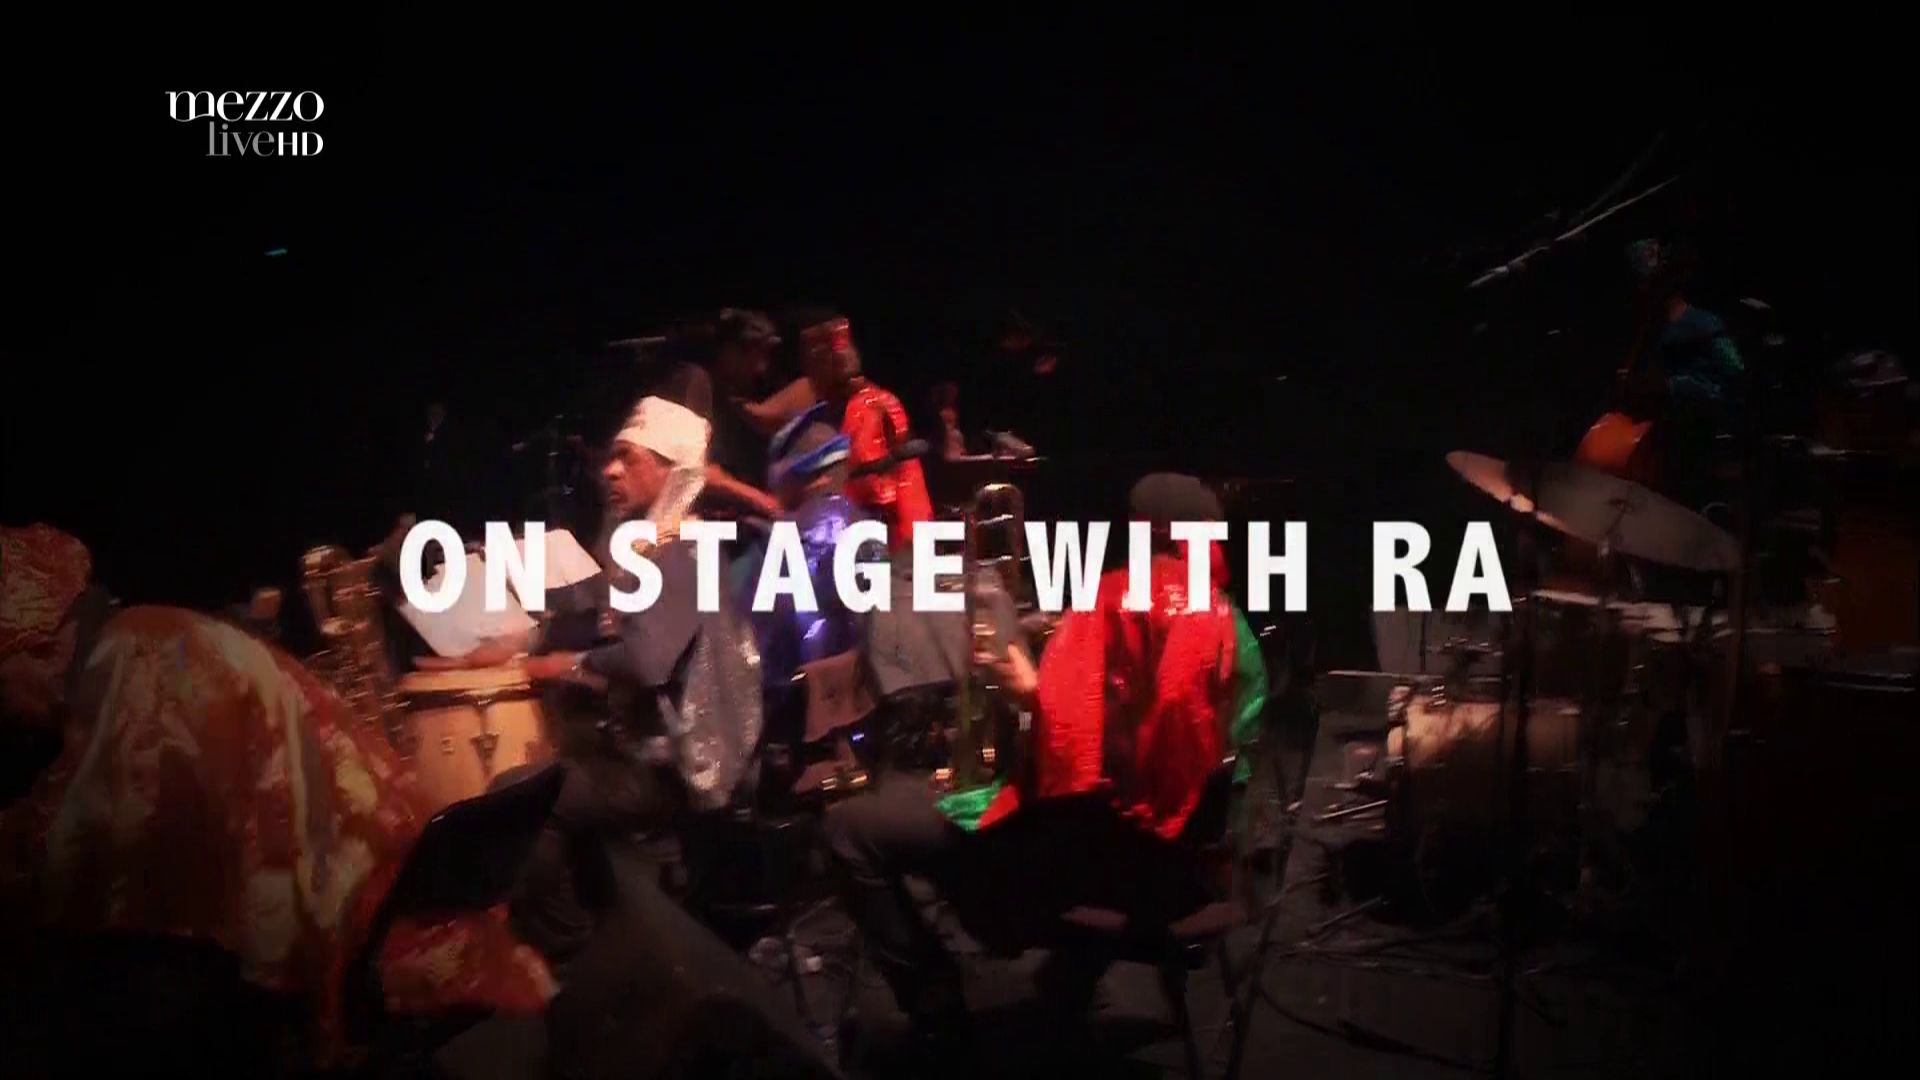 2015 Sun Ra - On Stage With Ra At Banlieues Bleues [HDTV 1080i] 0